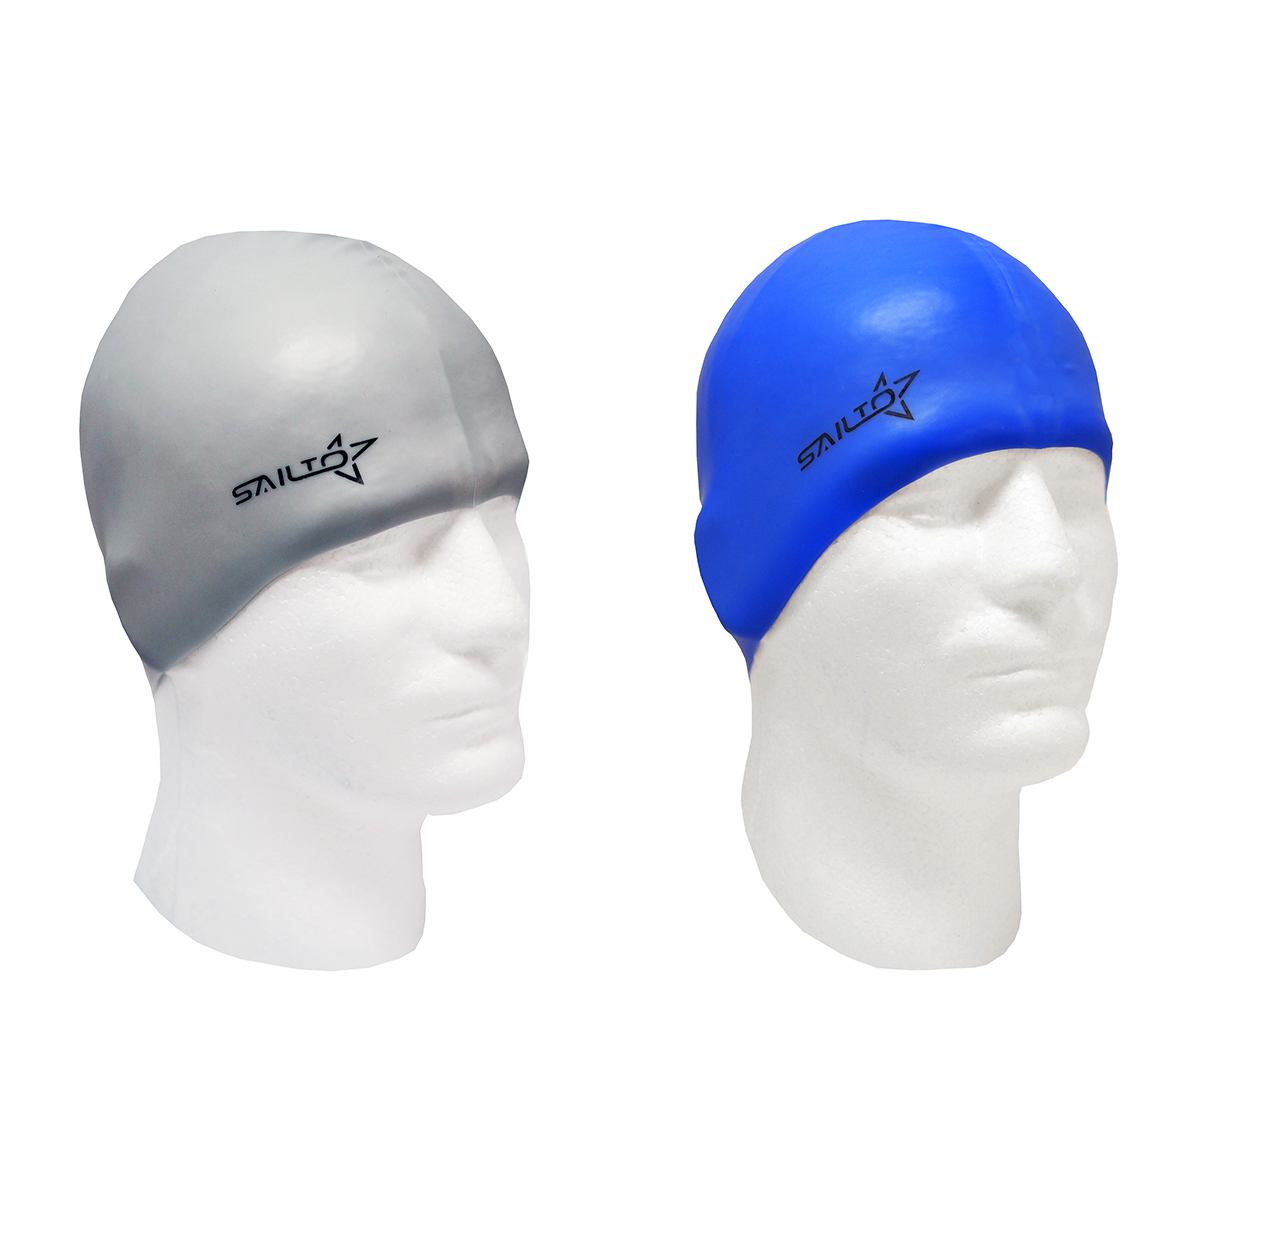 Non Toxic and Allergenic Silicone Highly Elastic Waterproof Swim Cap for Adults or Children with Swimming Goggles and... by